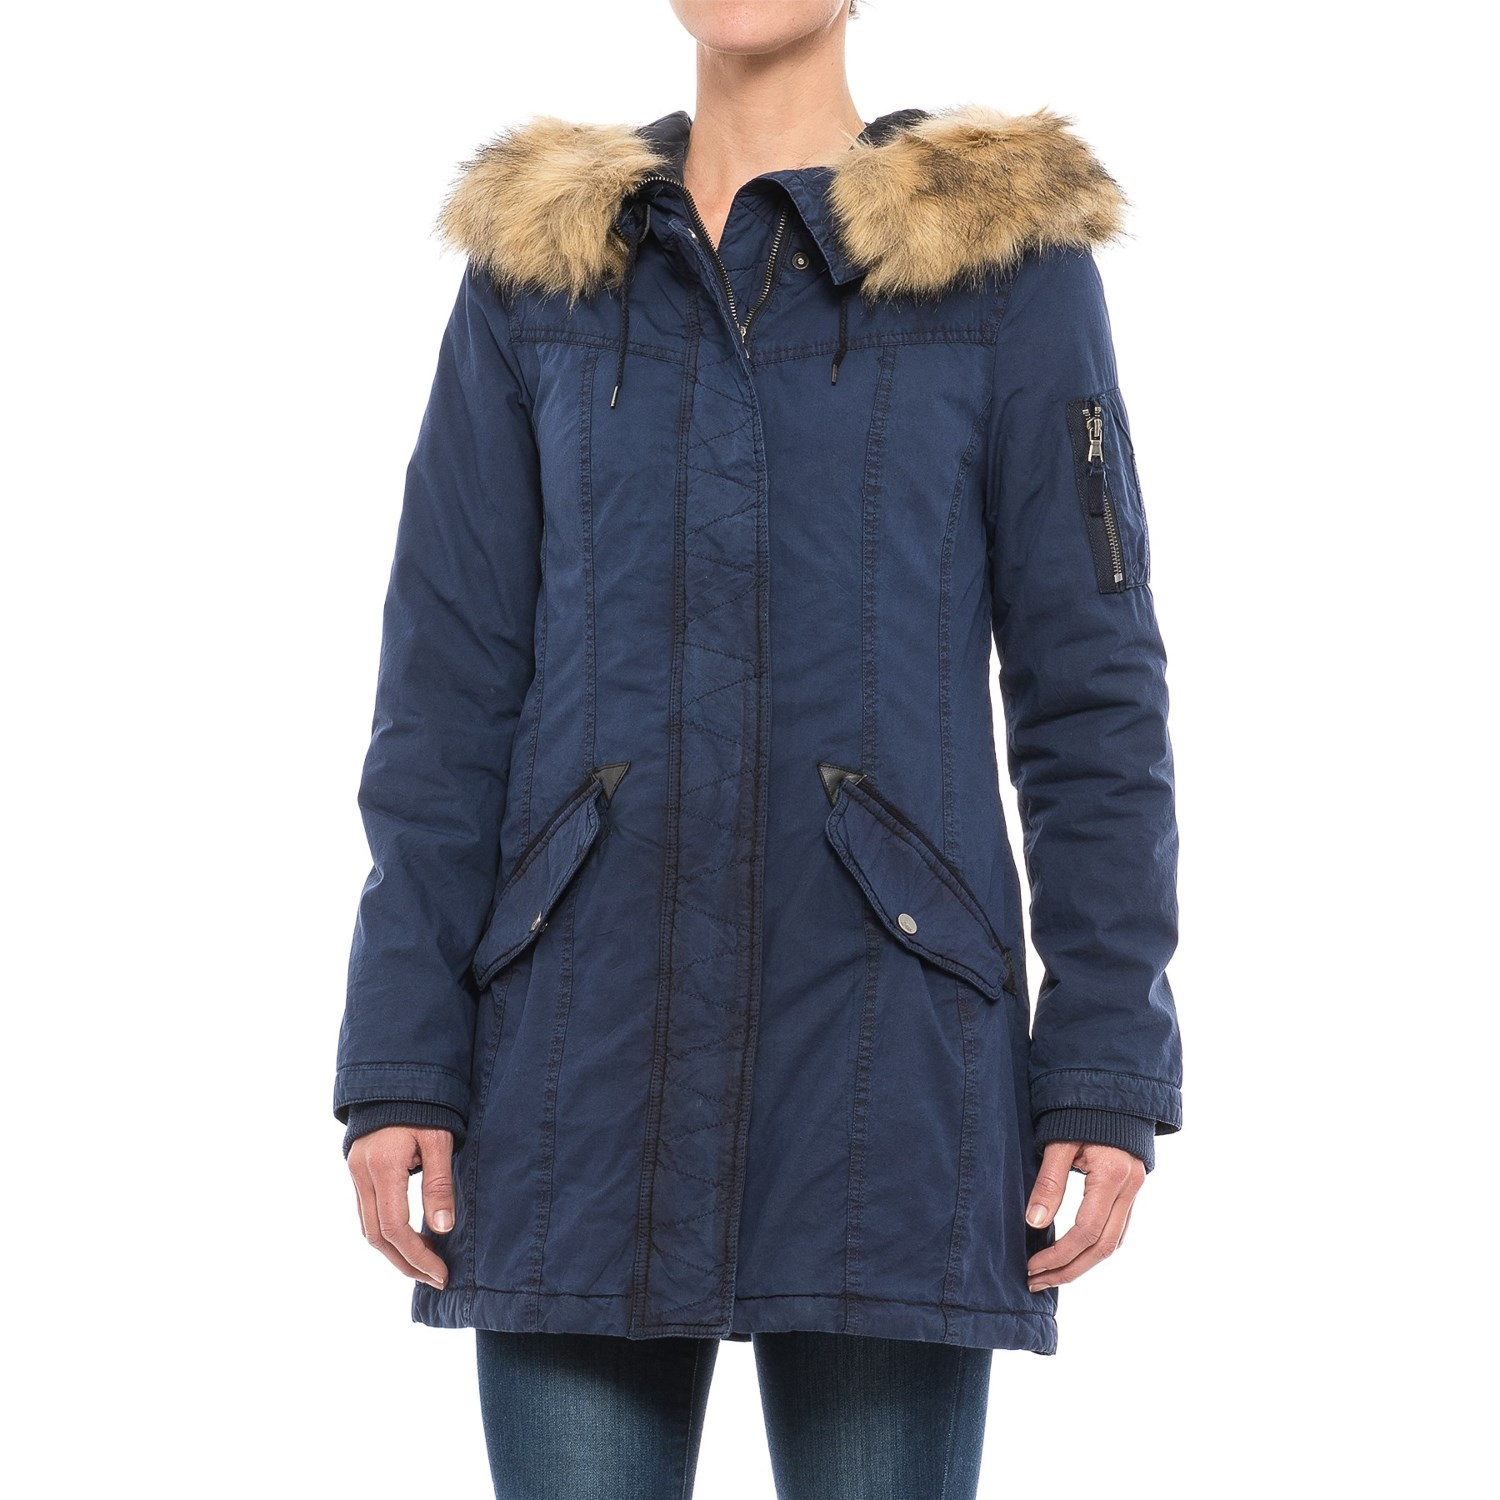 G.H. Bass & Co. Long Hooded Swing Coat (For Women) - Save 64%